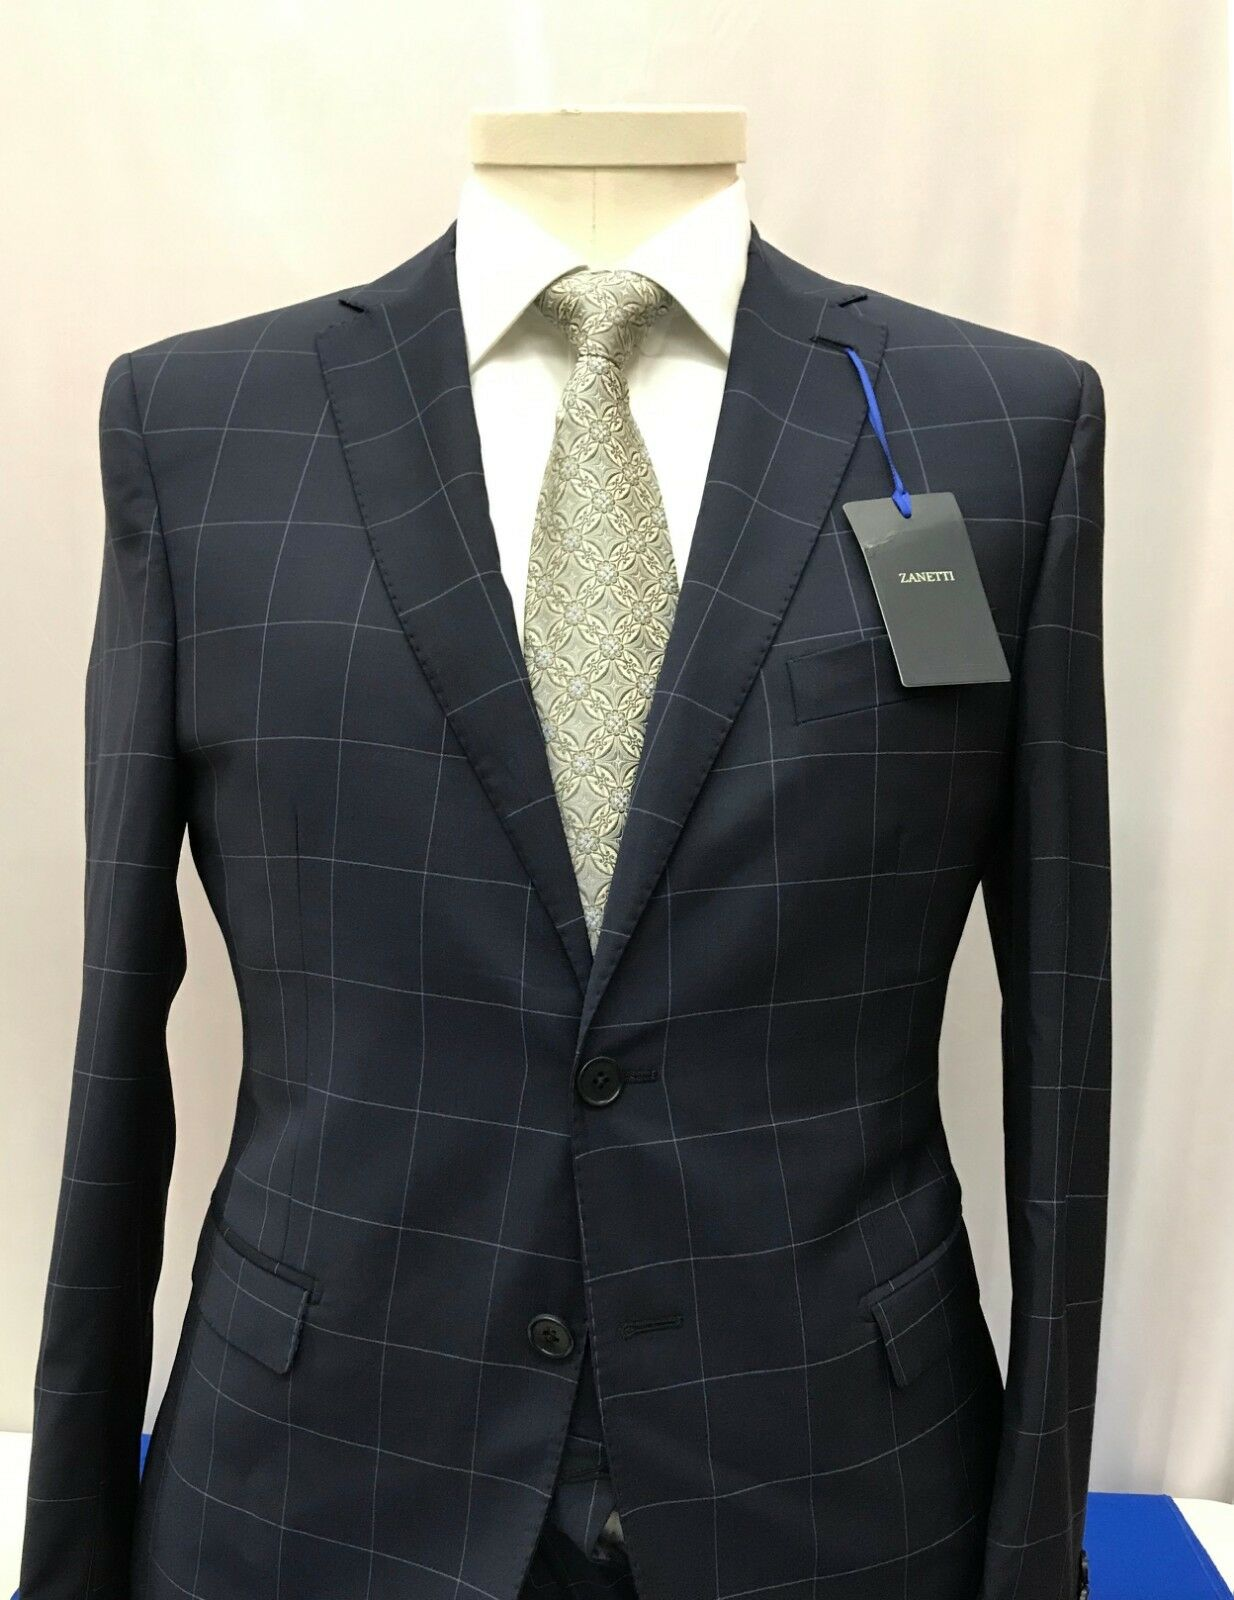 Zanetti 100% Wool Suits Made in  Luca/pzes ART:182/015/116